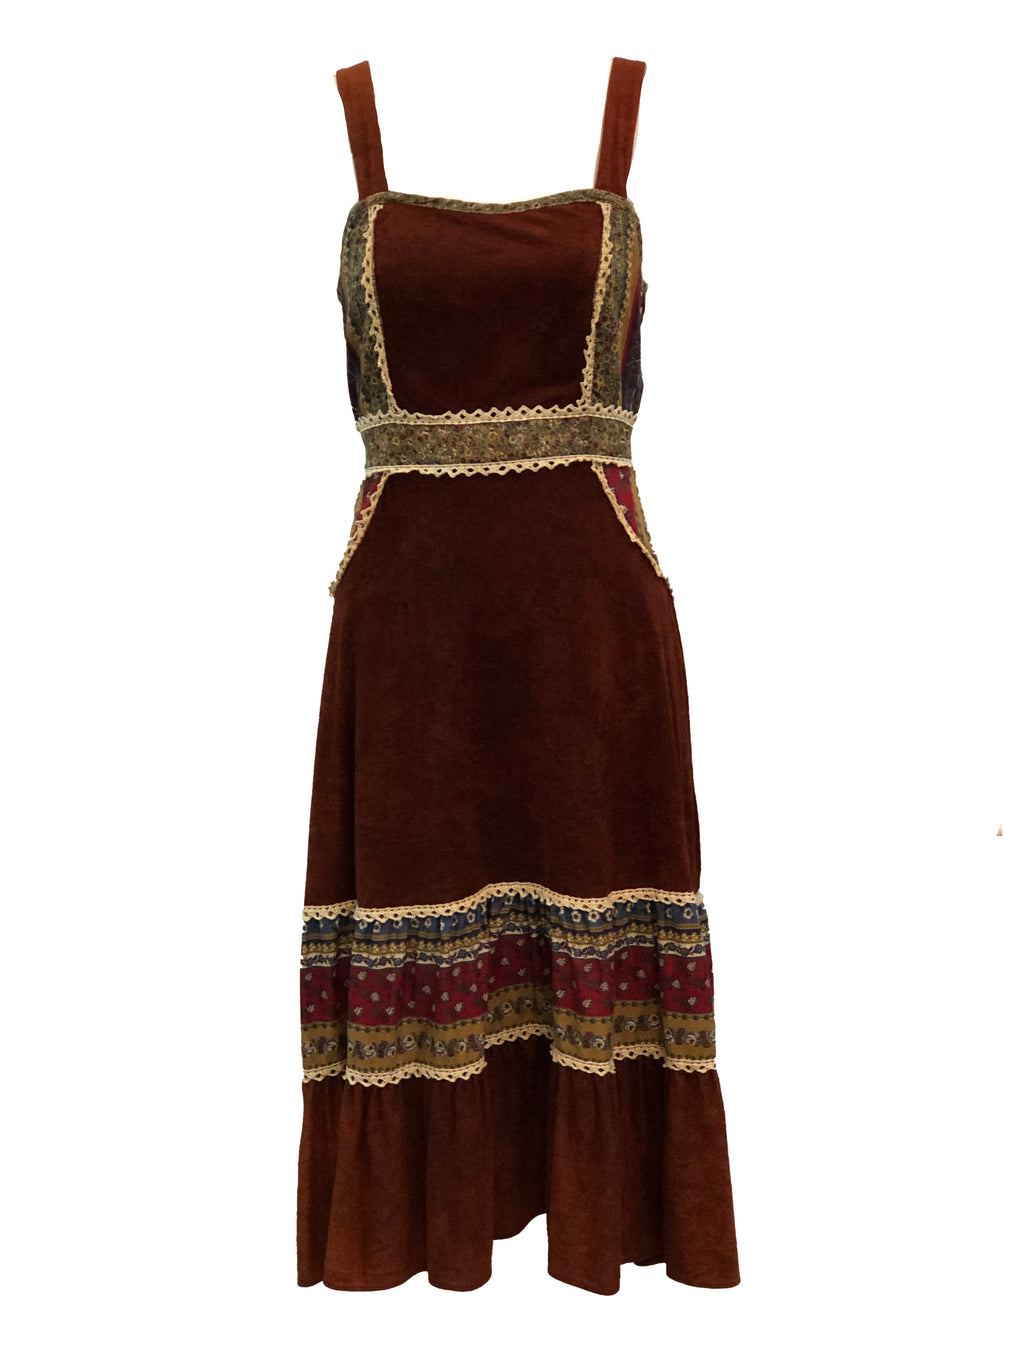 70s Brown Hippie Peasant Dress Front 1 of 3